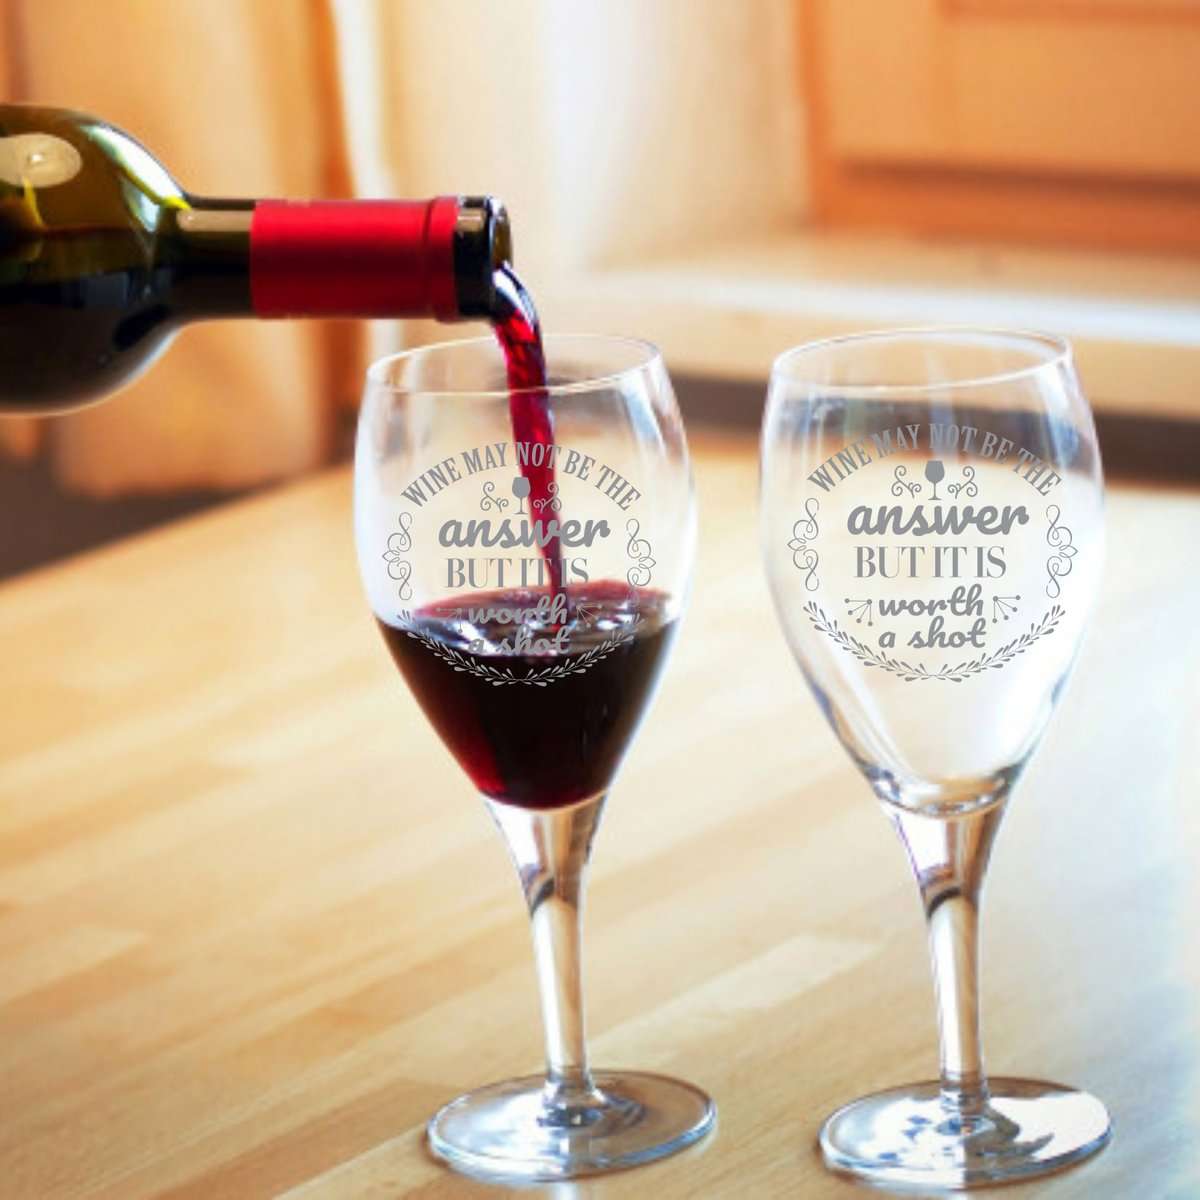 Excited to share the latest addition to my #etsy shop: ENGRAVED RED WINE Glasses, Wine May Not Be The Answer Glass Wine, Funny Red Wine Glass https://t.co/OISXvj1UmG #birthday #christmas #glass #redwinegoblets #glassredwine #redwineglasses #wineglasscustom #fathersdayg https://t.co/W2IZeFGr90